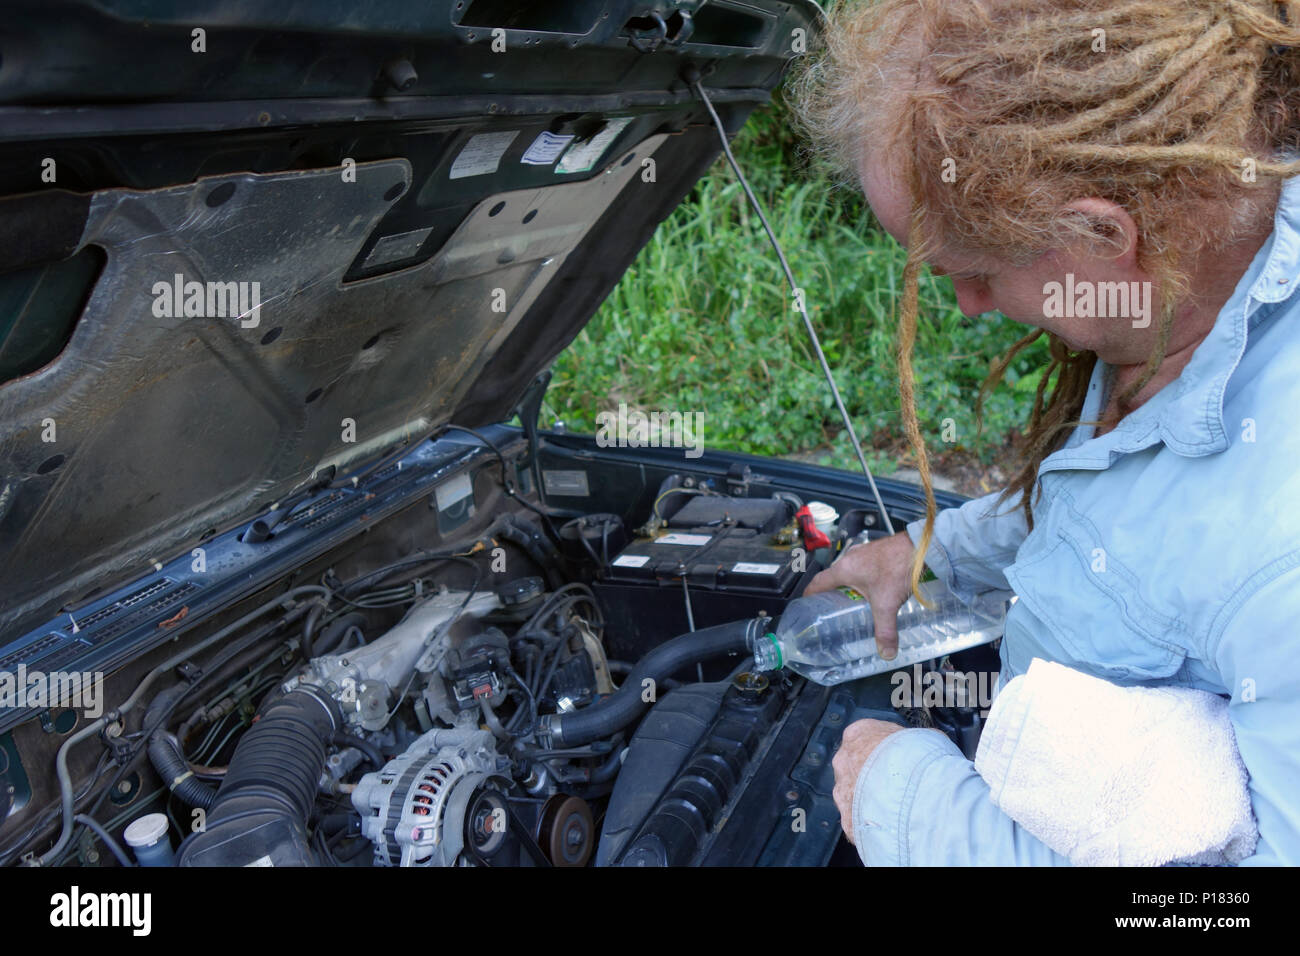 Water Engine Stock Photos Images Alamy Diagrams Dragon School Of Motoring Pouring Into Radiator Overheated 4wd Car Beside The Road Daintree Queensland